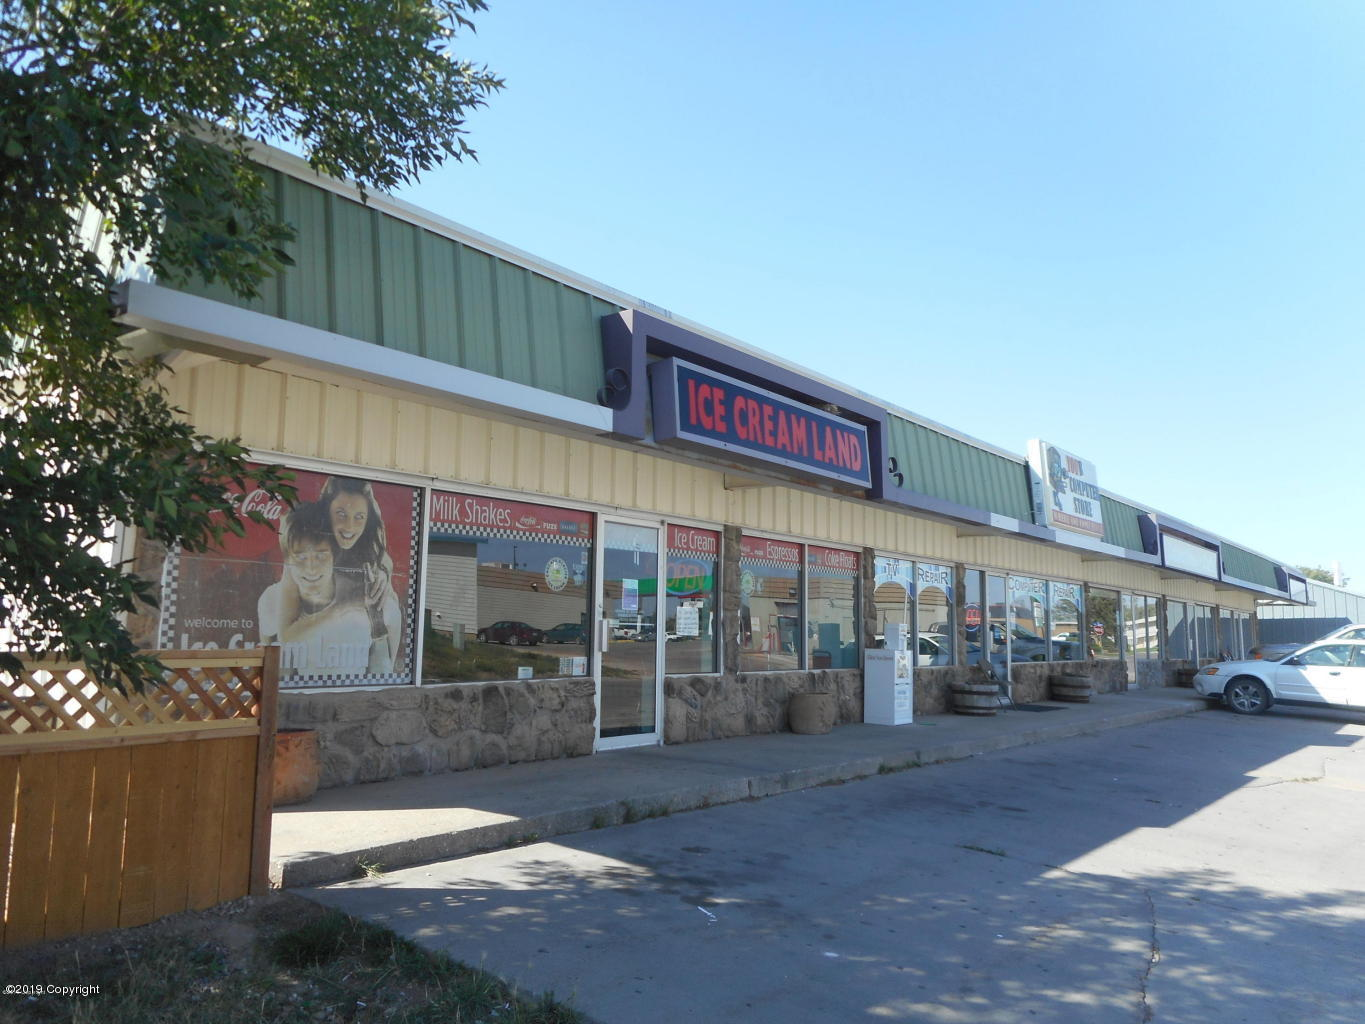 Looking for investment to provide some income?  This 4800 square foot neighborhood shopping center is just for you.  There are three quality tenants in this fully leased building.  An ice cream shop, computer repair store and day care center.  All three businesses have leased in this location for minimum three years.    The property is almost 1/2 acre lot and has a 20'x30' storage building.  Plenty of parking behind building.